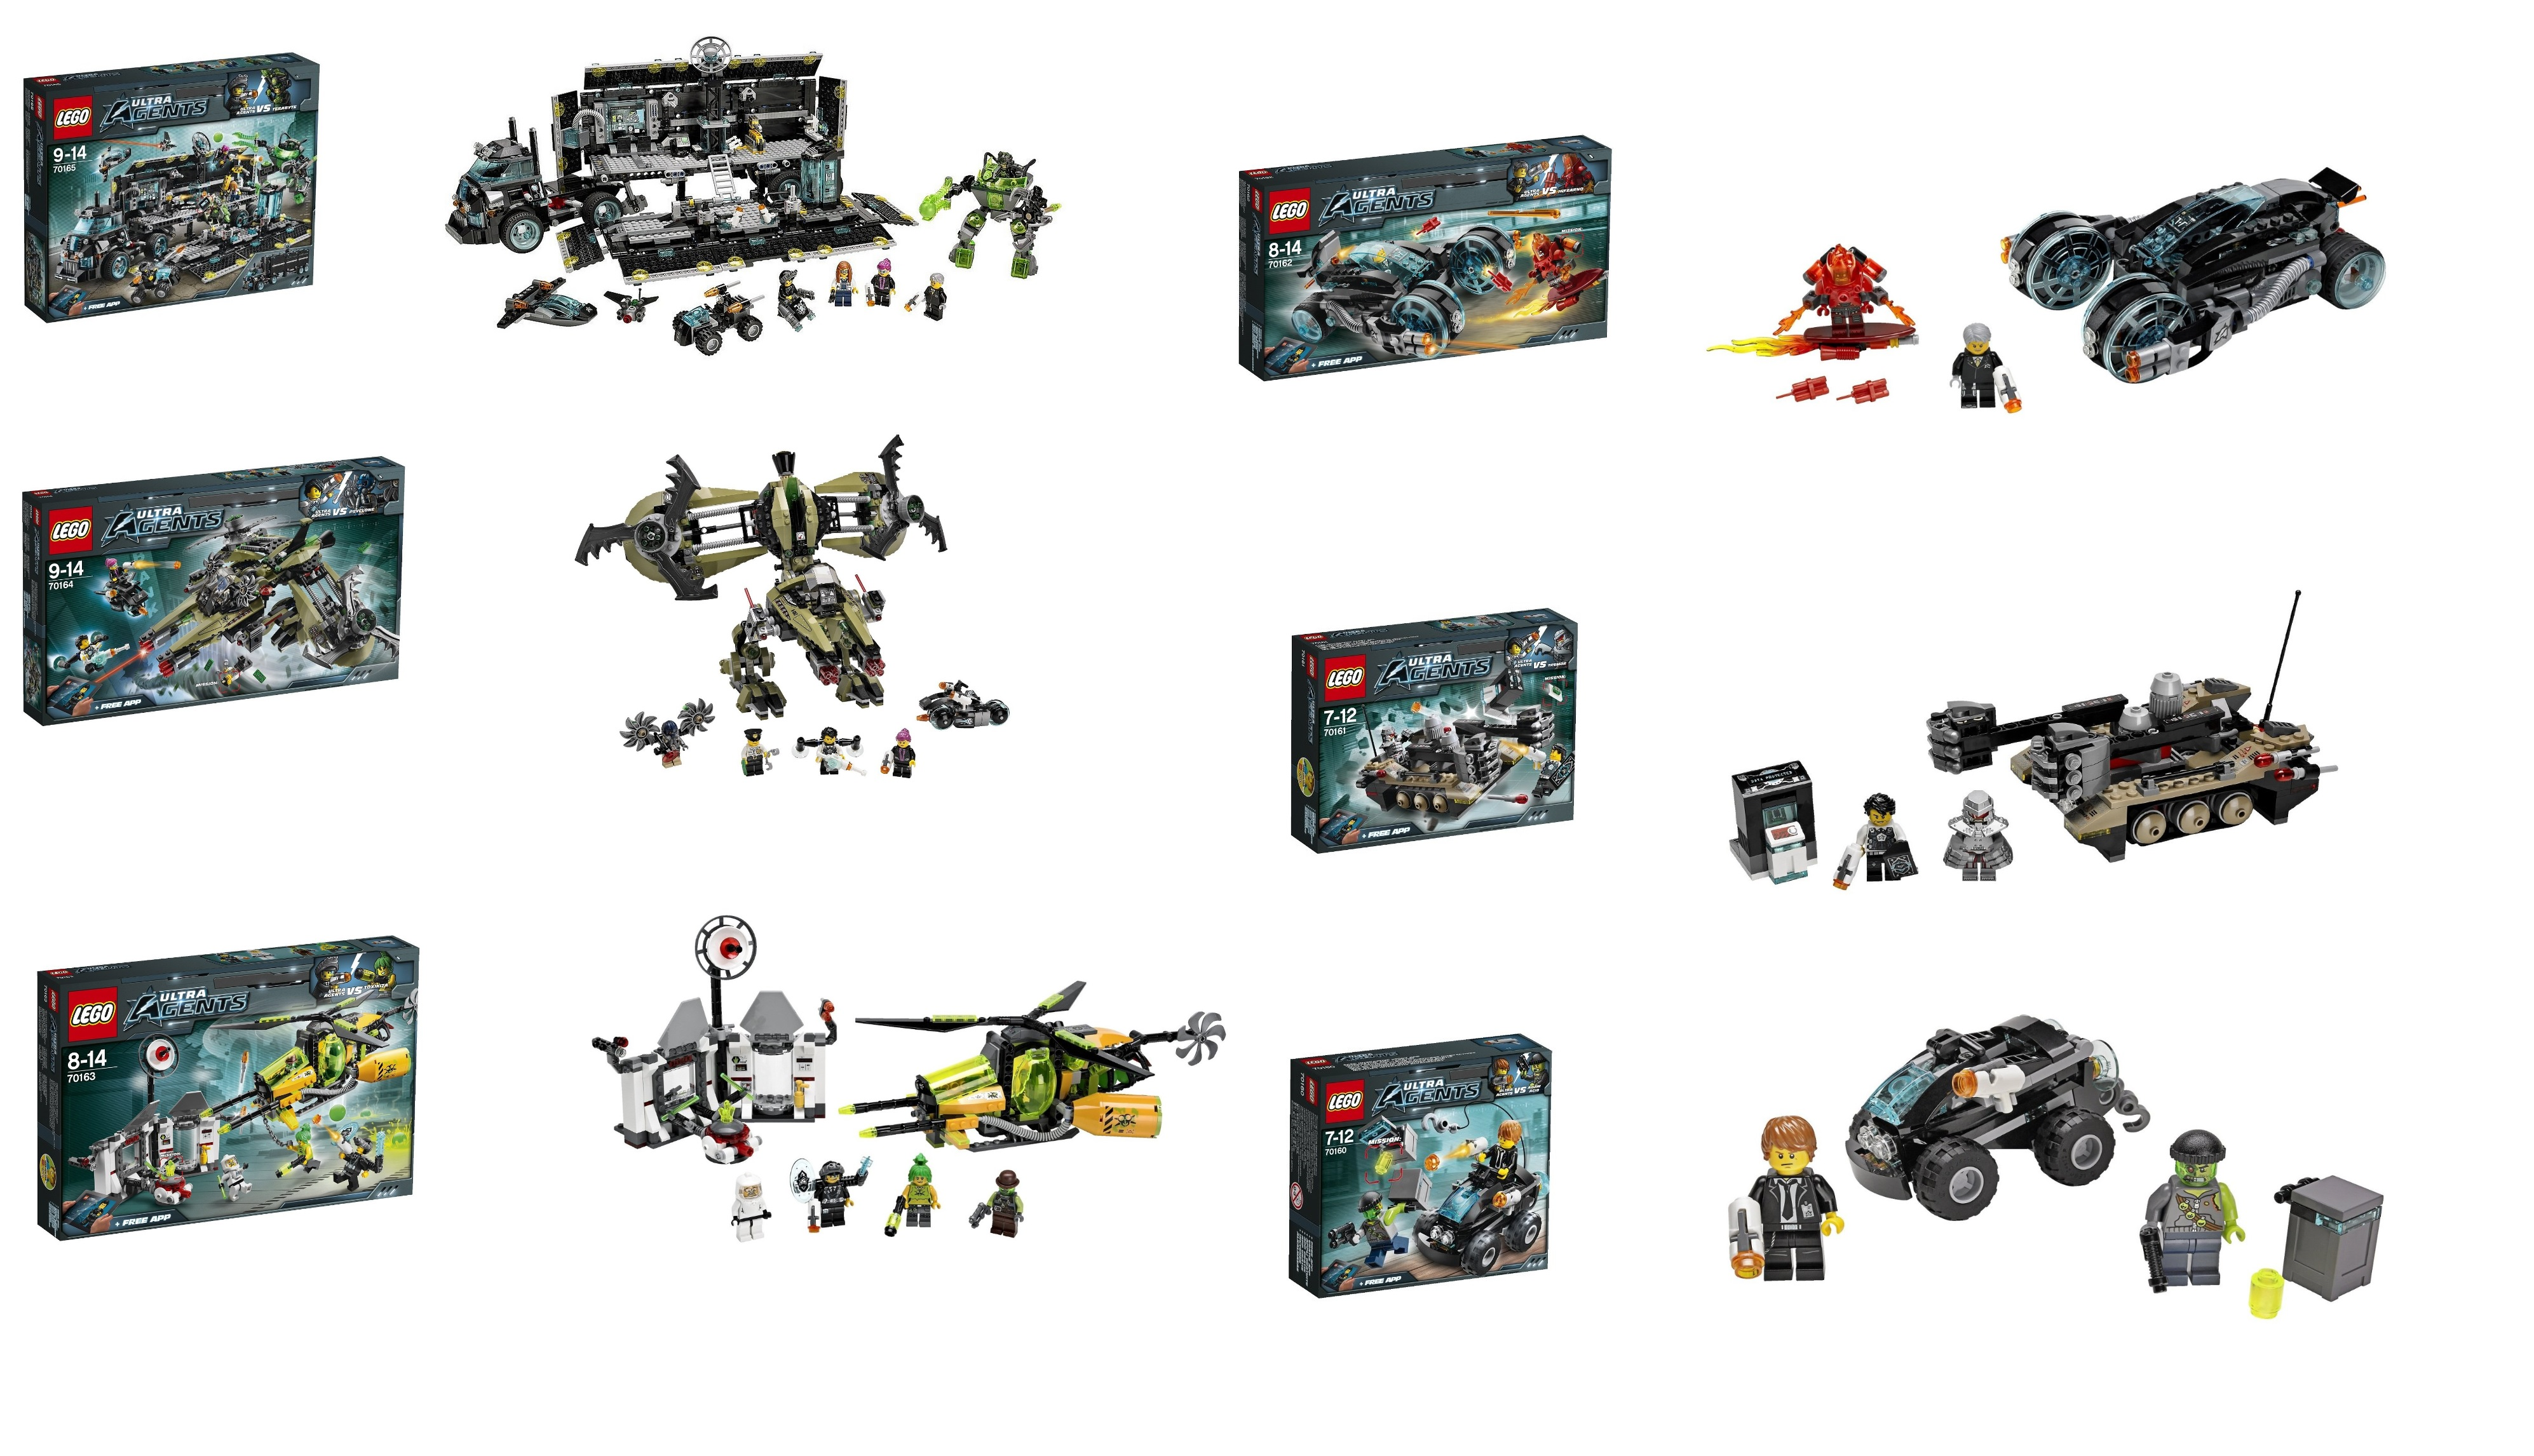 The Lego Movie Ultra Agents Summer 2014 Pictures Toys N Bricks Lego News Blog